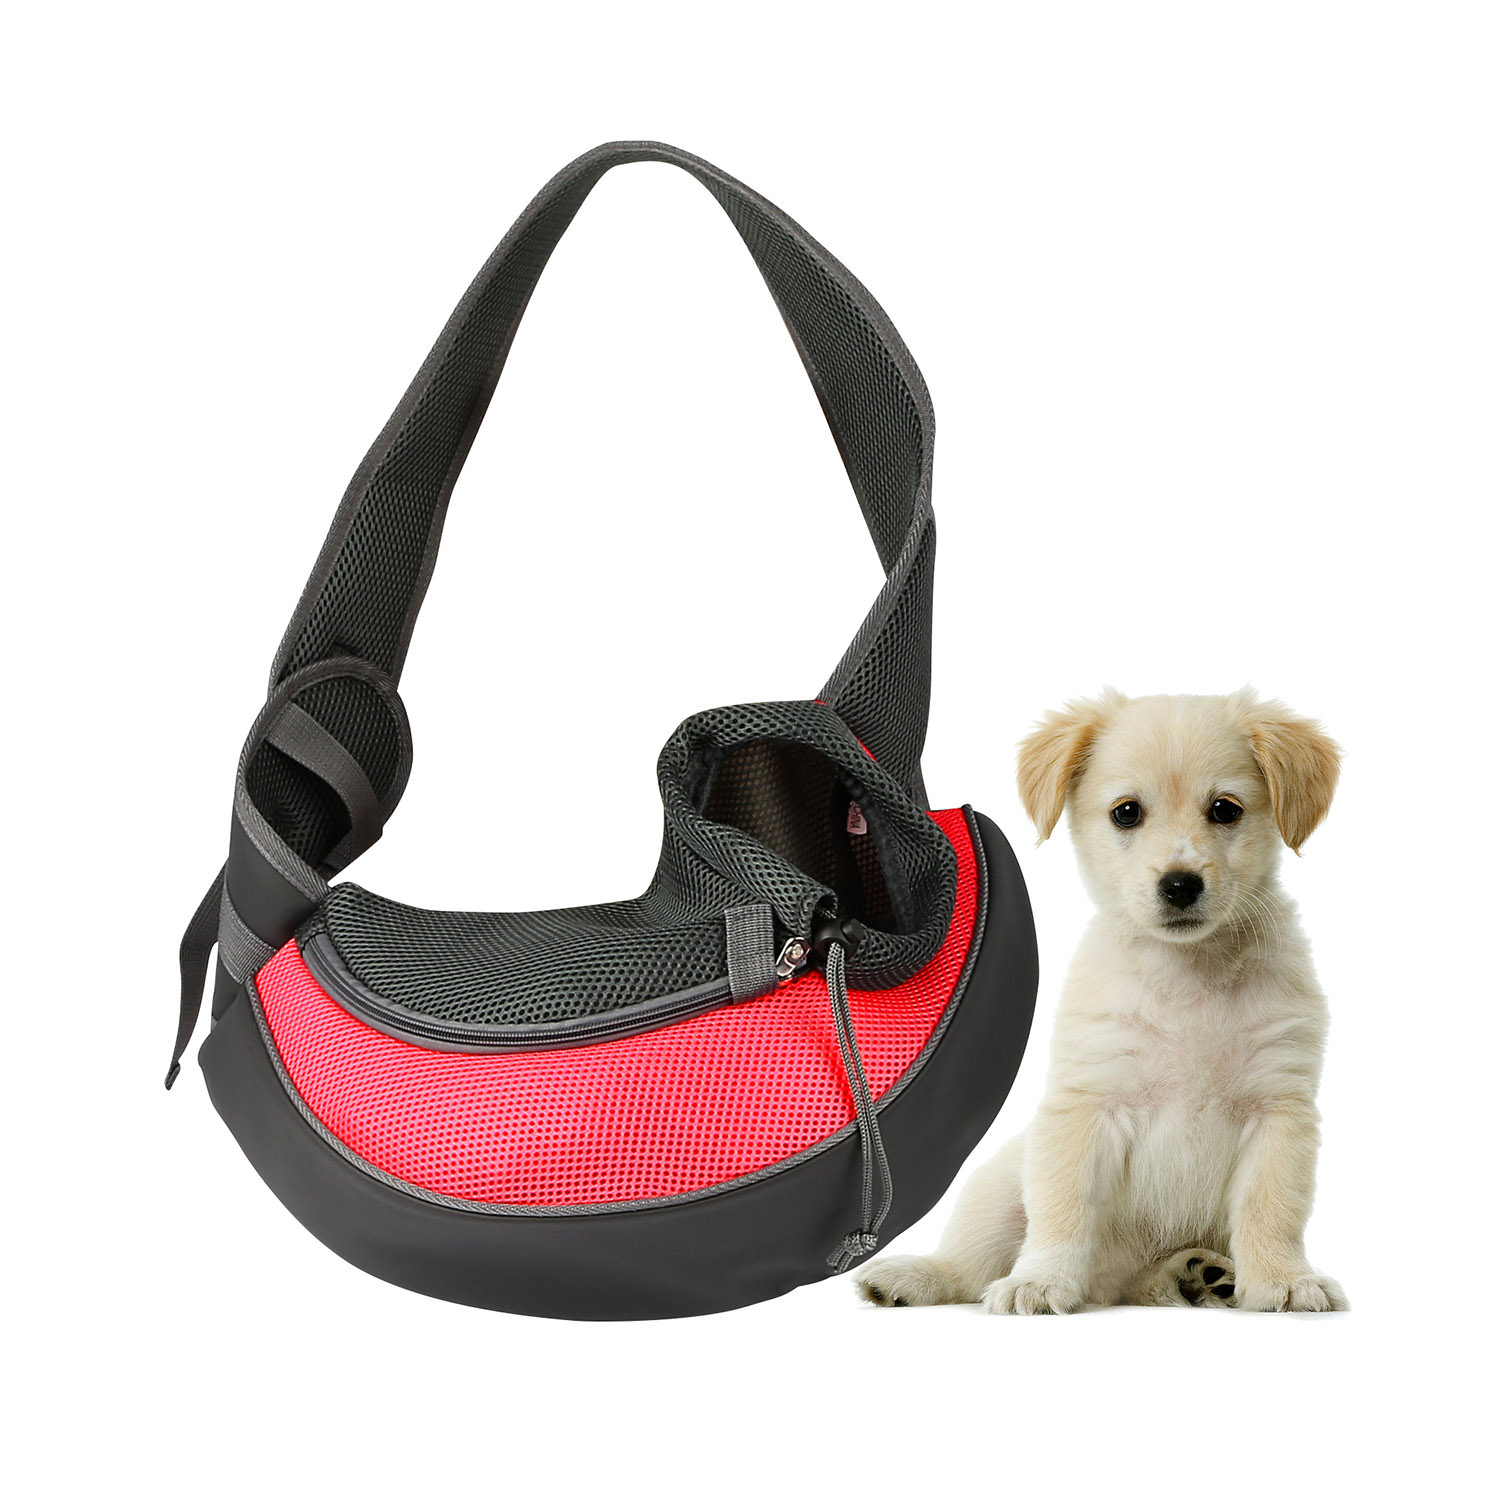 Pet Puppy Carrier Sling Hands-Free Shoulder Travel Bag. Great For Walking Your Pet. Dog Cat Pet Puppy Outdoor Reversible Pouch Mesh Shoulder Carry Bag Tote Handbag Carrier- (Red/Large)